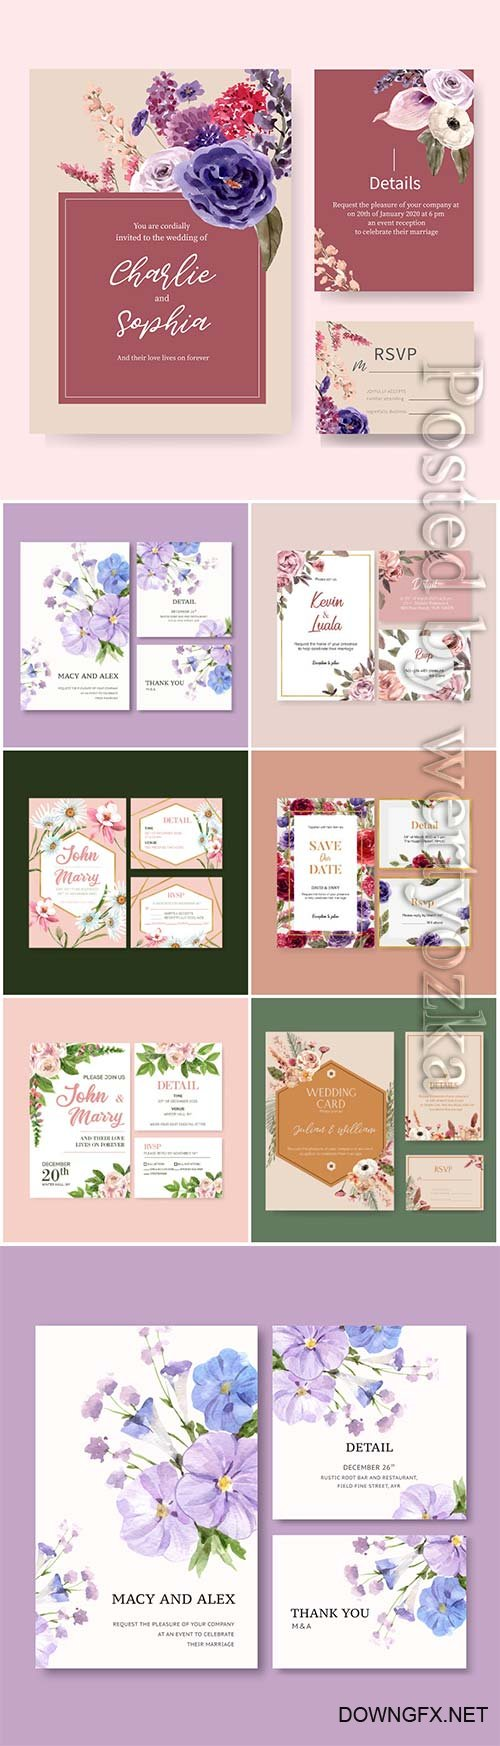 Floral wedding card with watercolor illustration